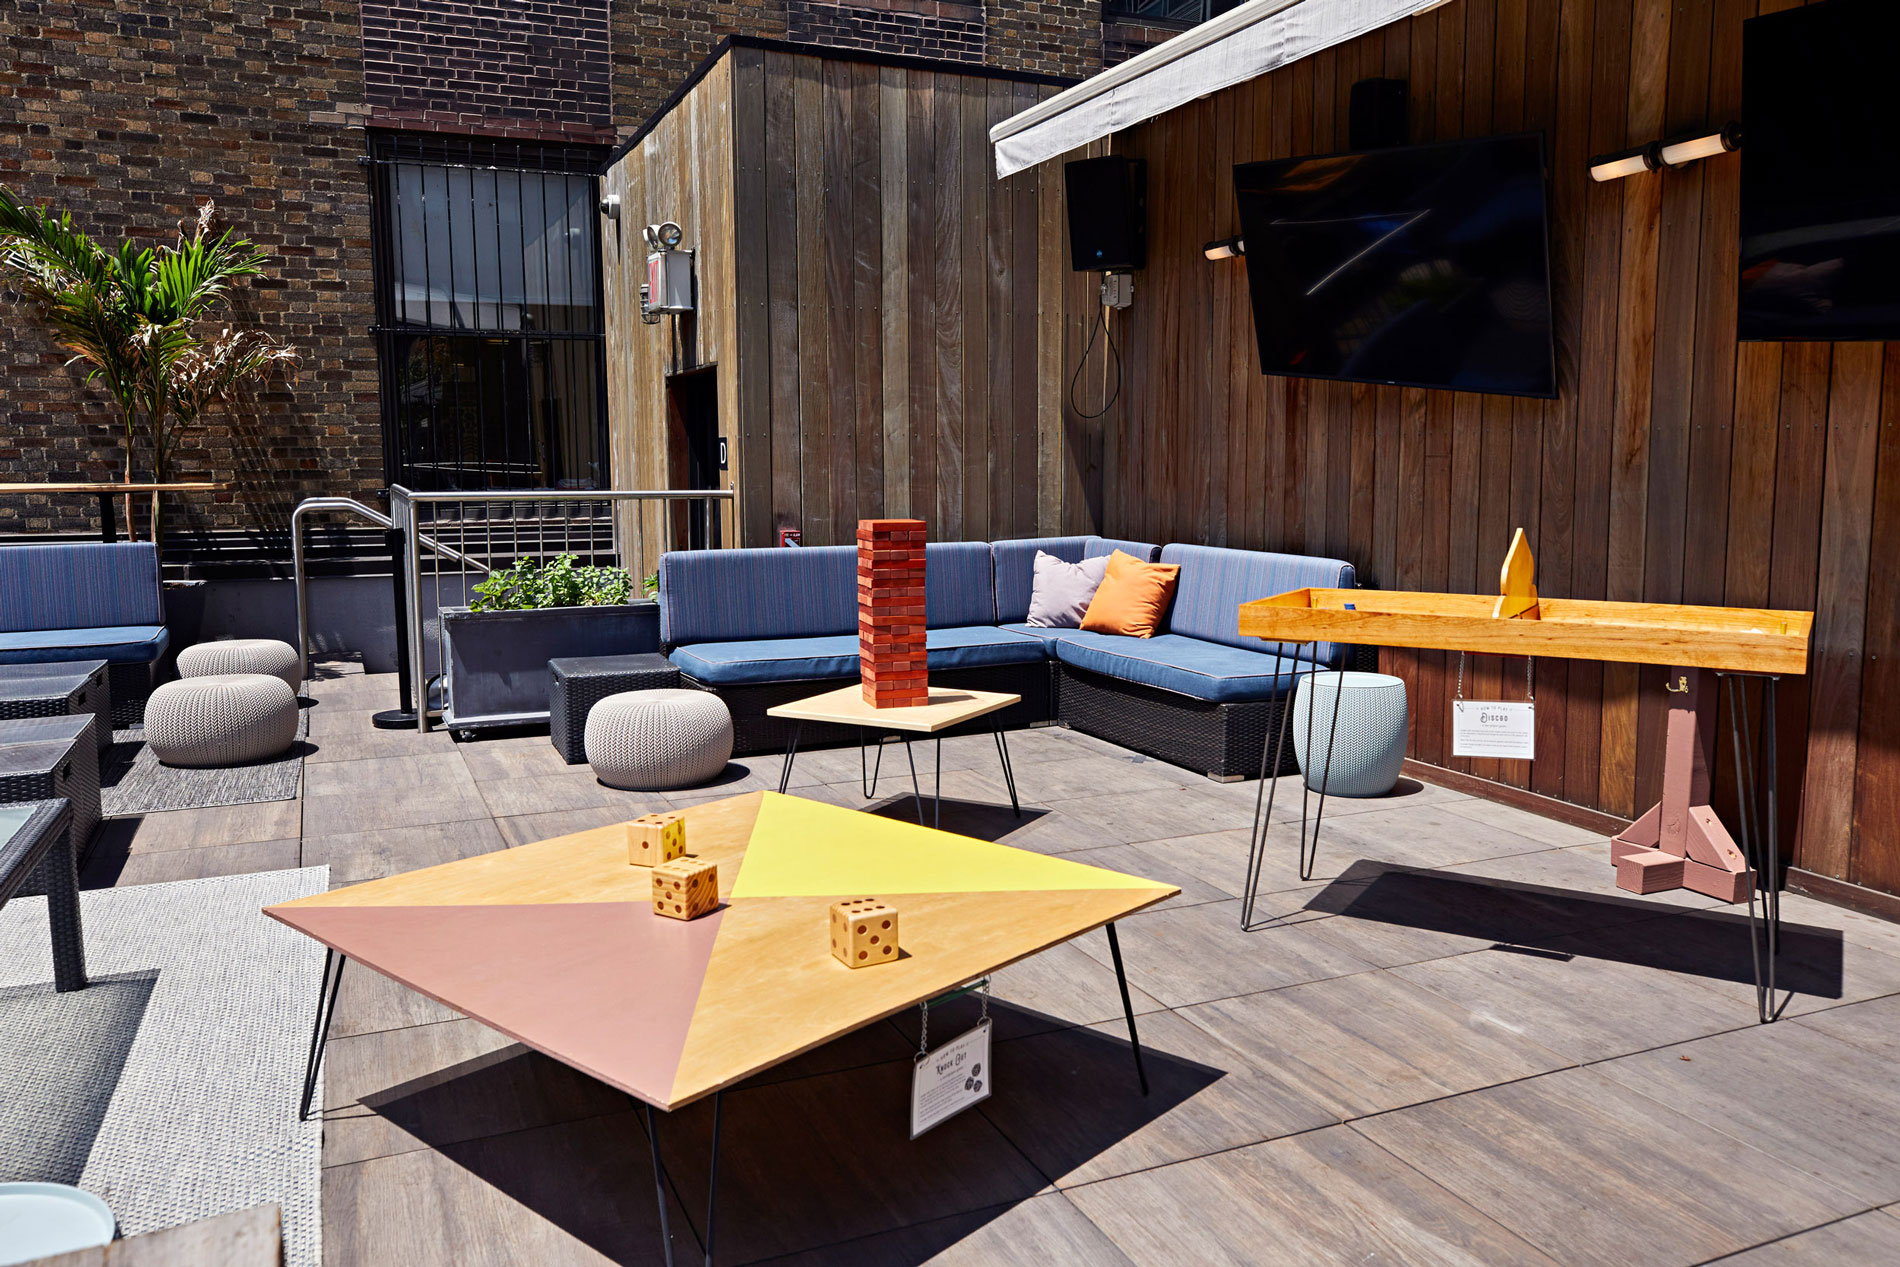 Squarespace-Summer-Party-2019-game-rentals-nyc.jpg